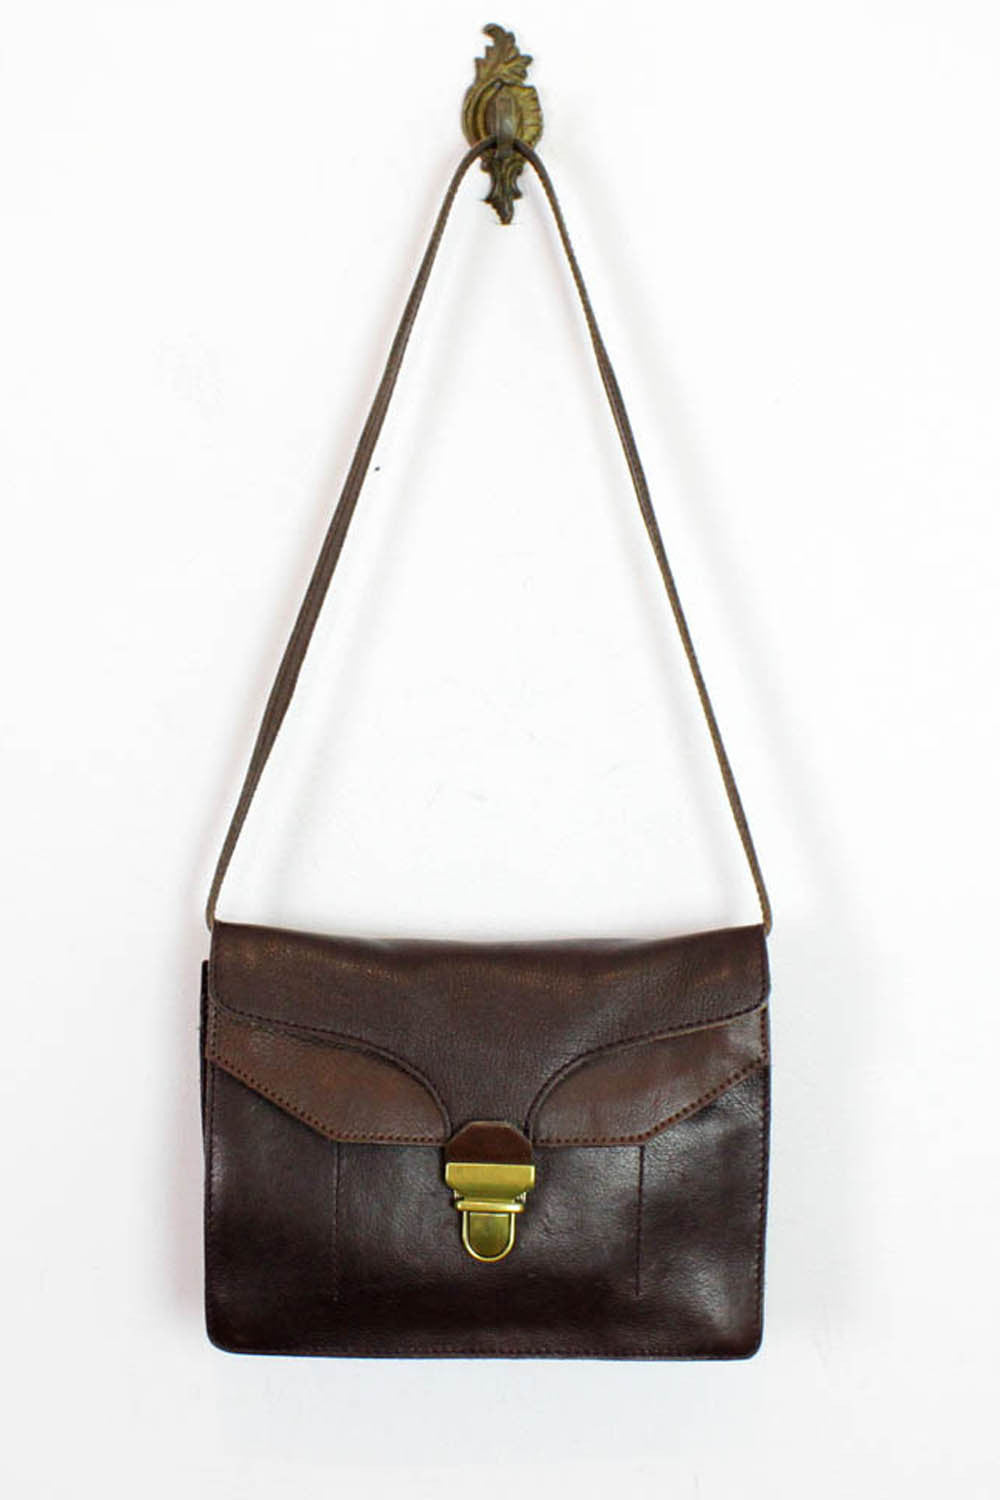 Madewell convertible clutch / satchel